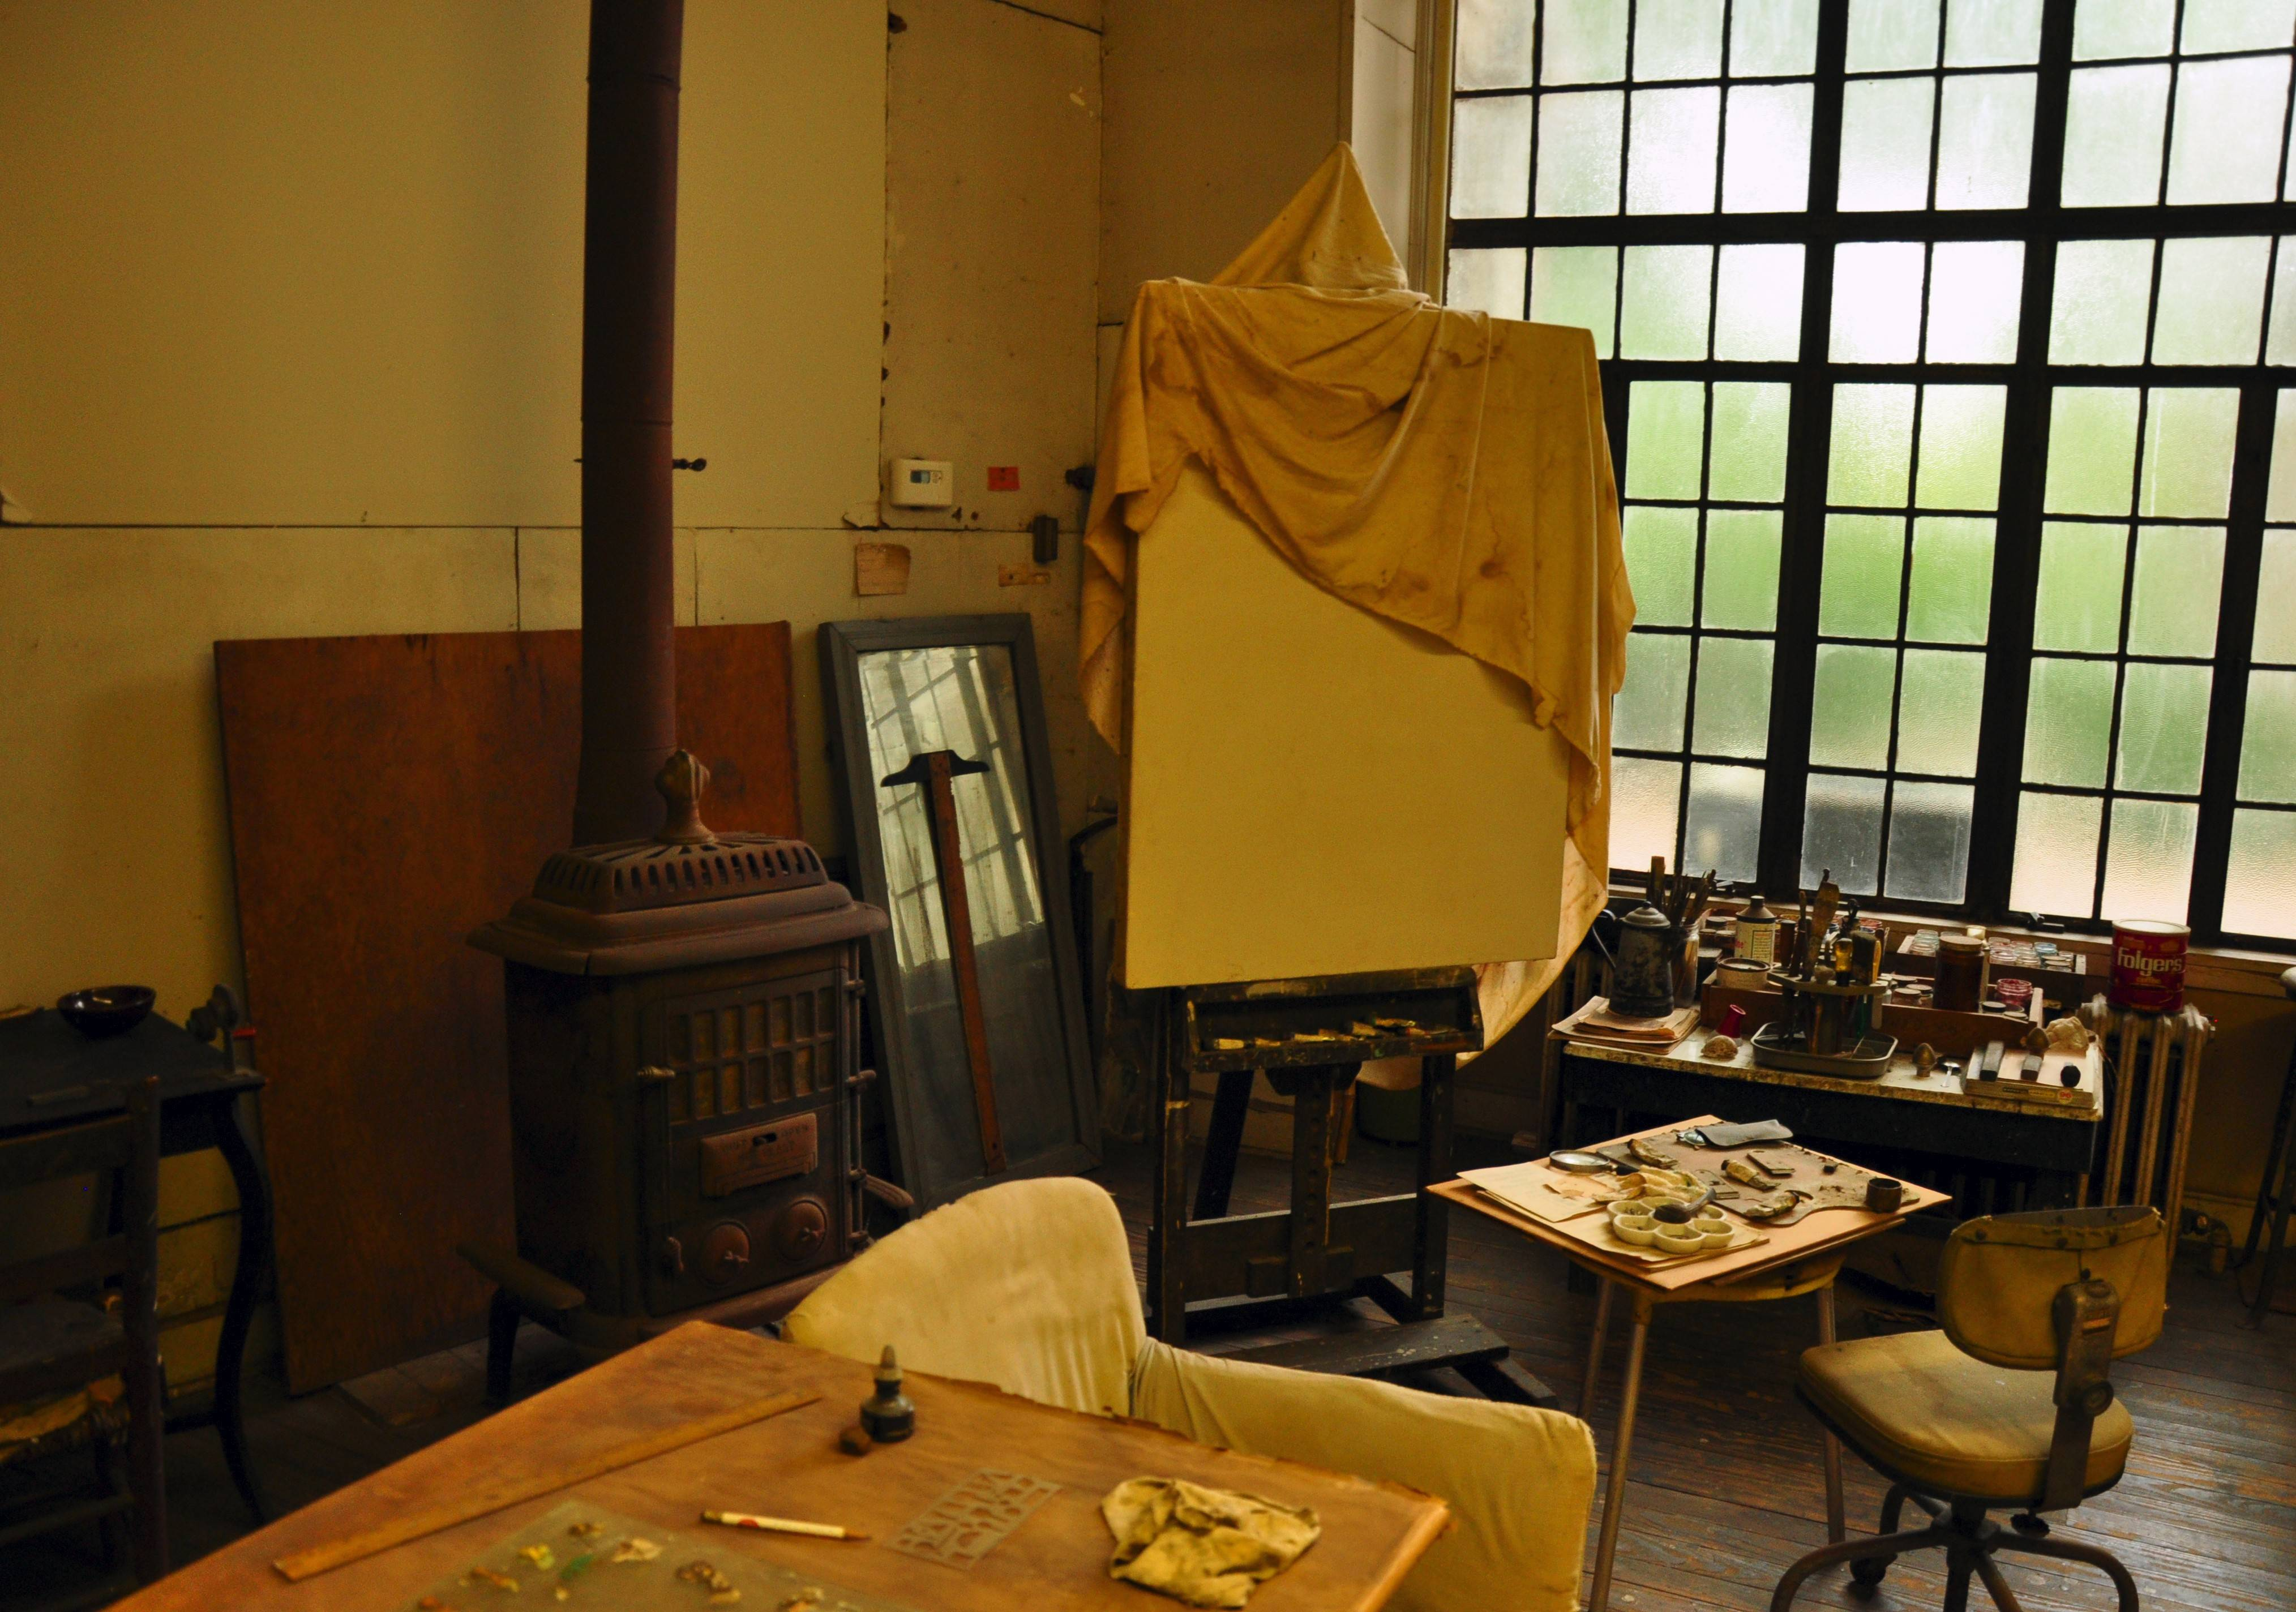 Thomas Hart Benton's studio appears much as he left it when he died there in 1975. The studio and the family home are part of a museum operated by the state of Missouri.